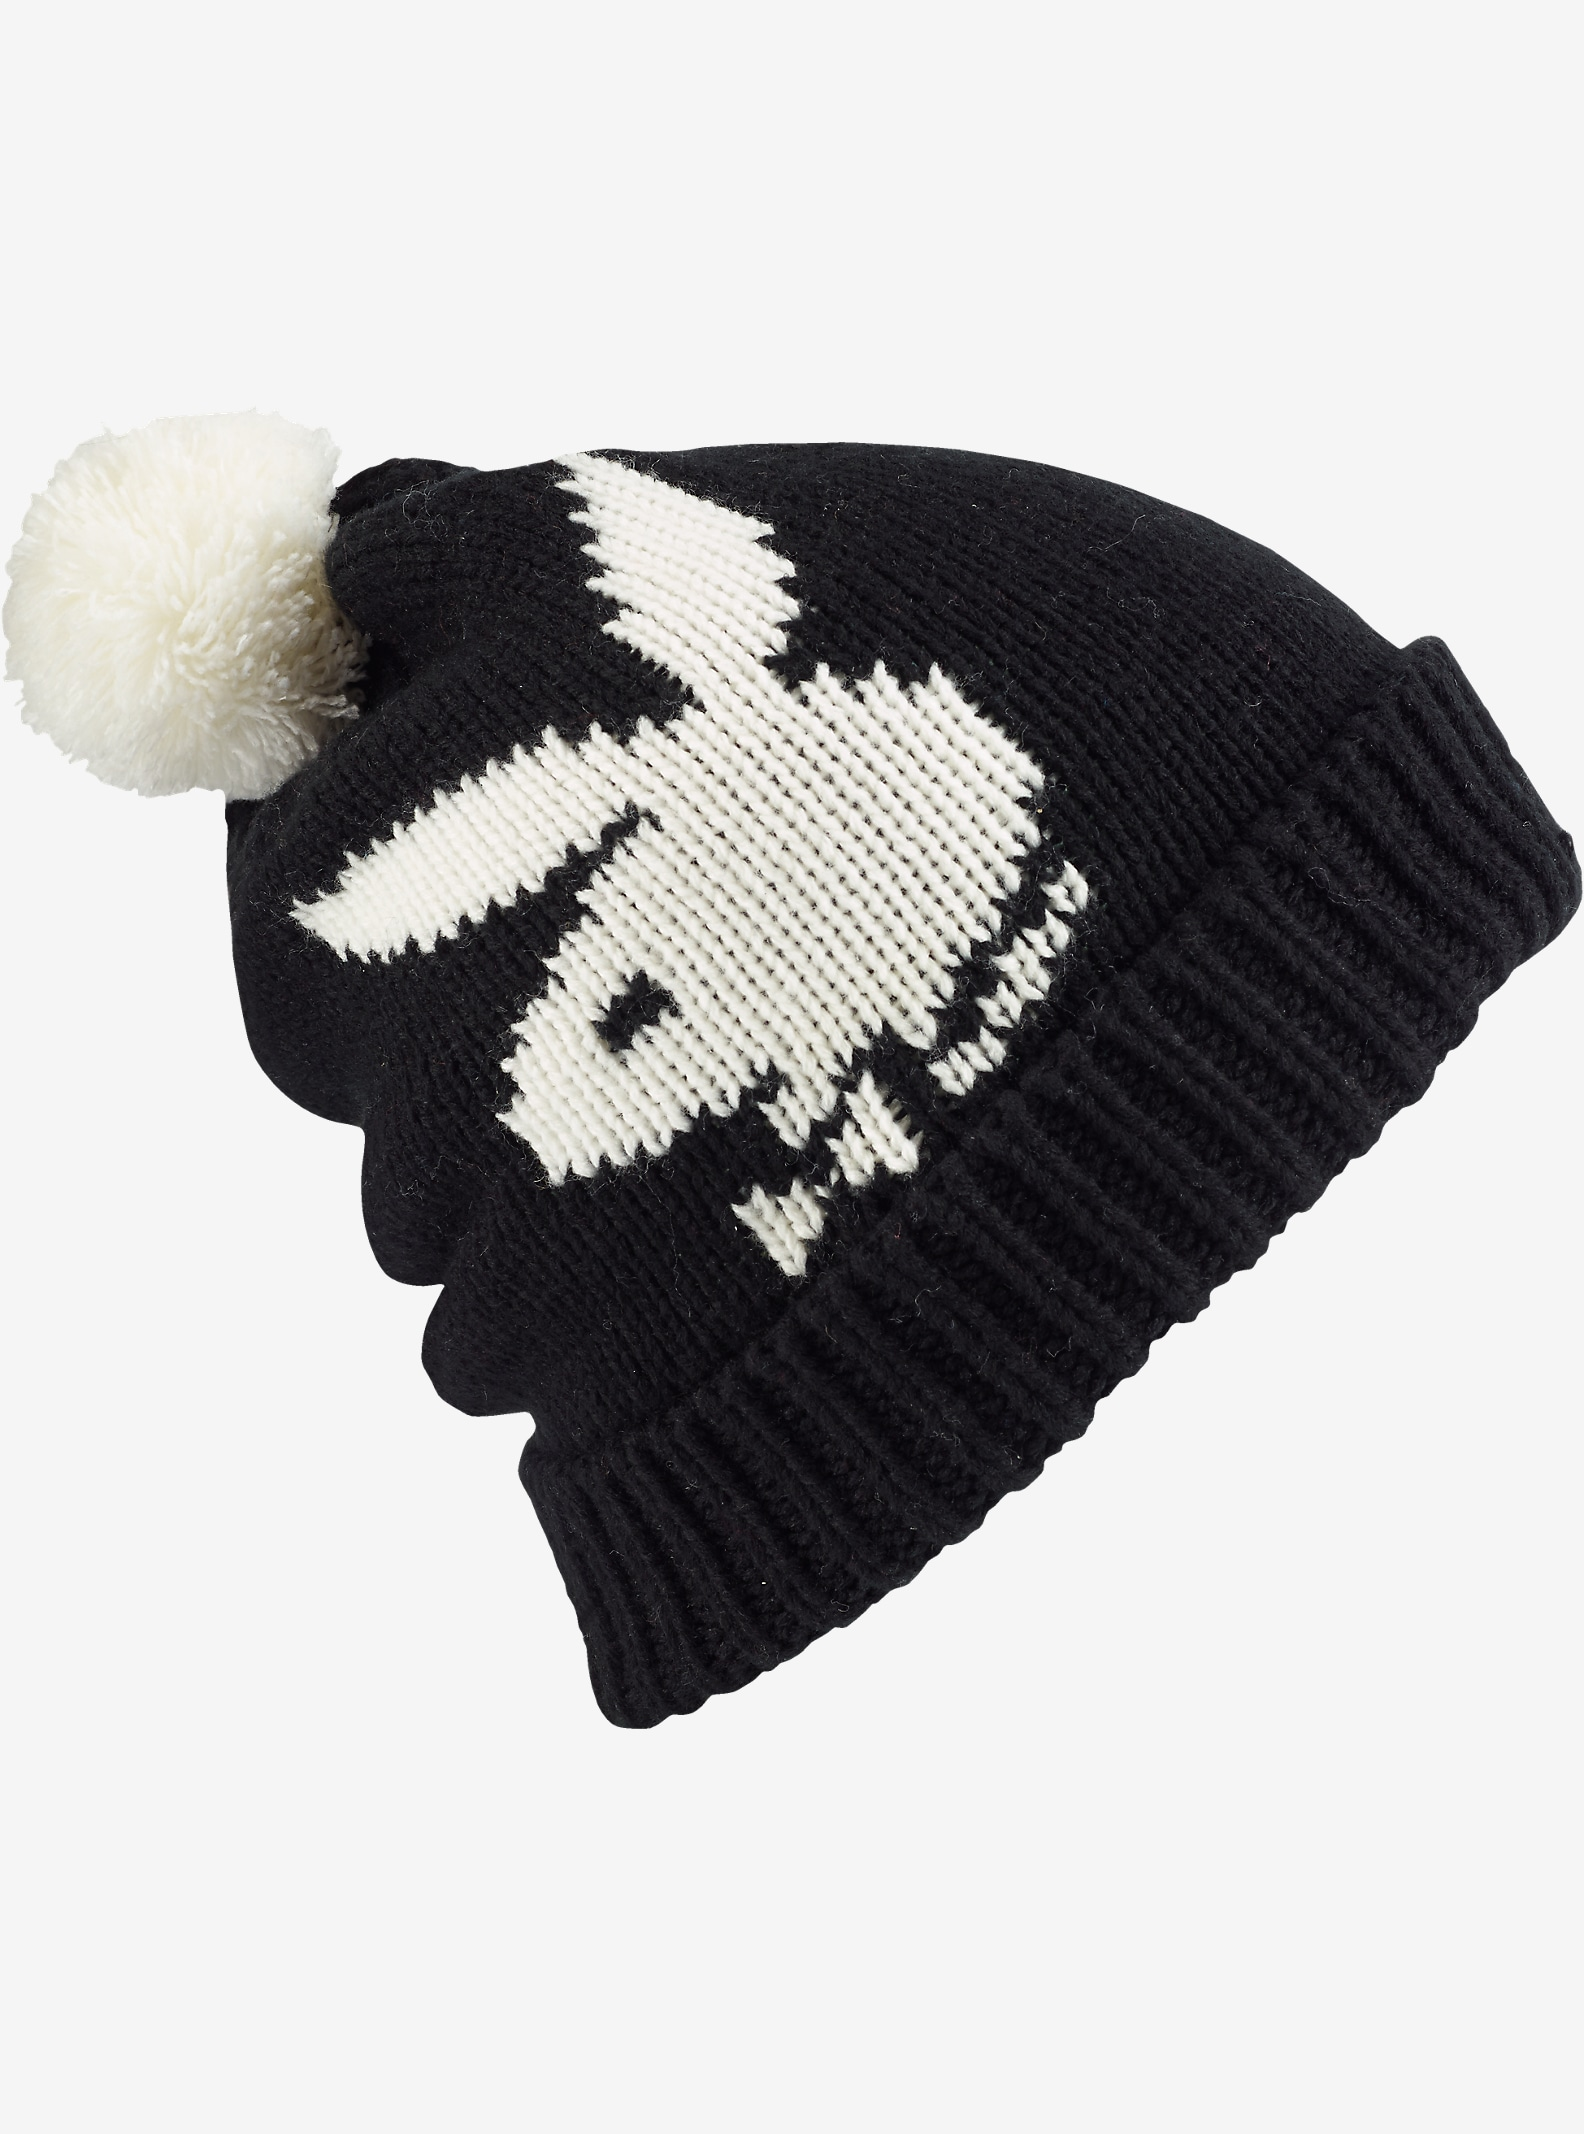 Burton x Playboy Beanie shown in True Black